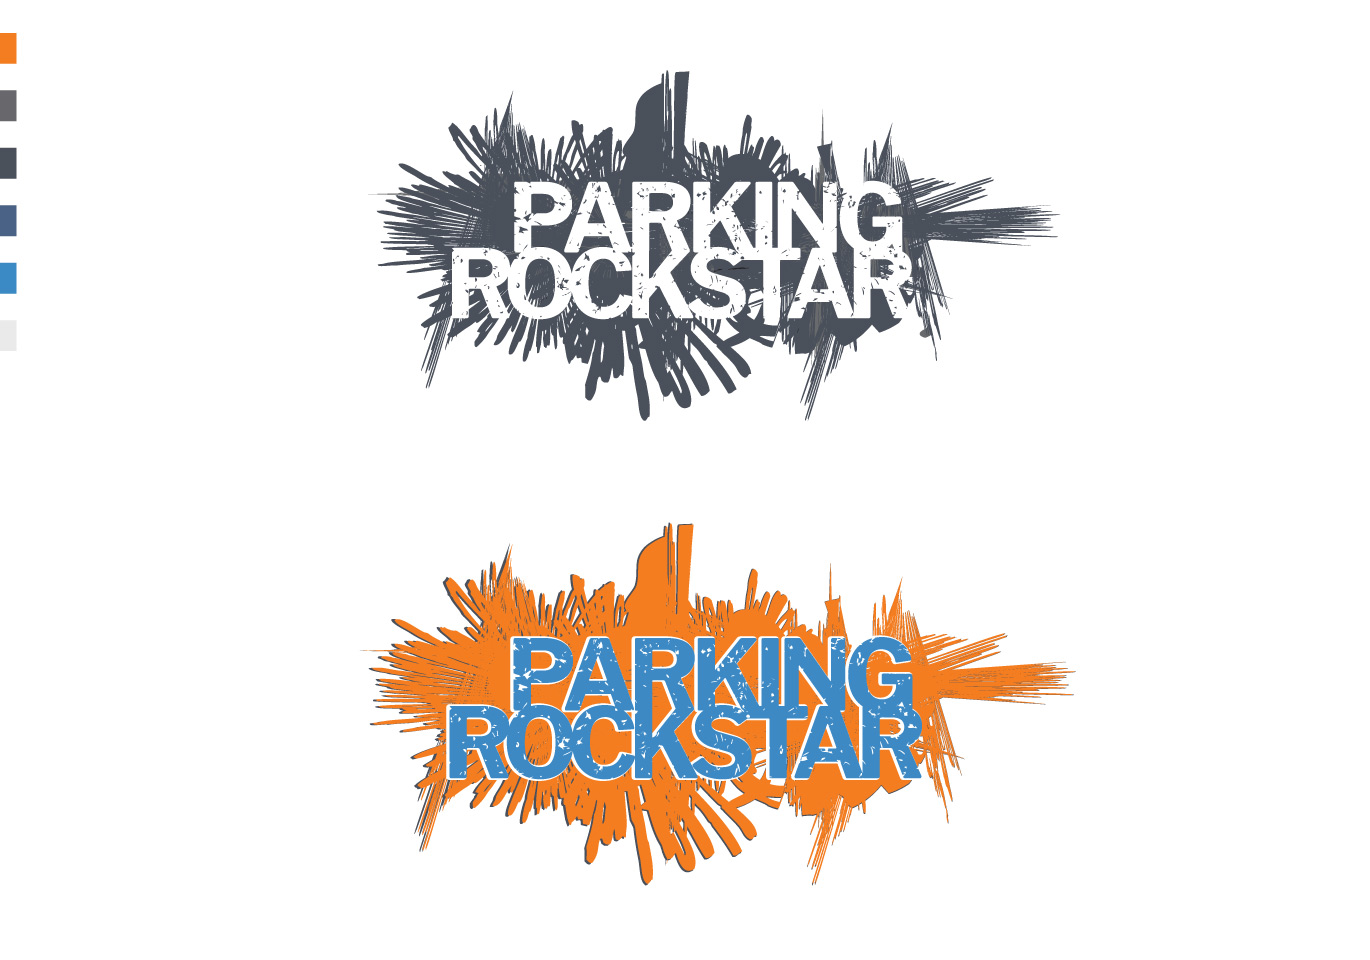 grey and color parking rockstar logo